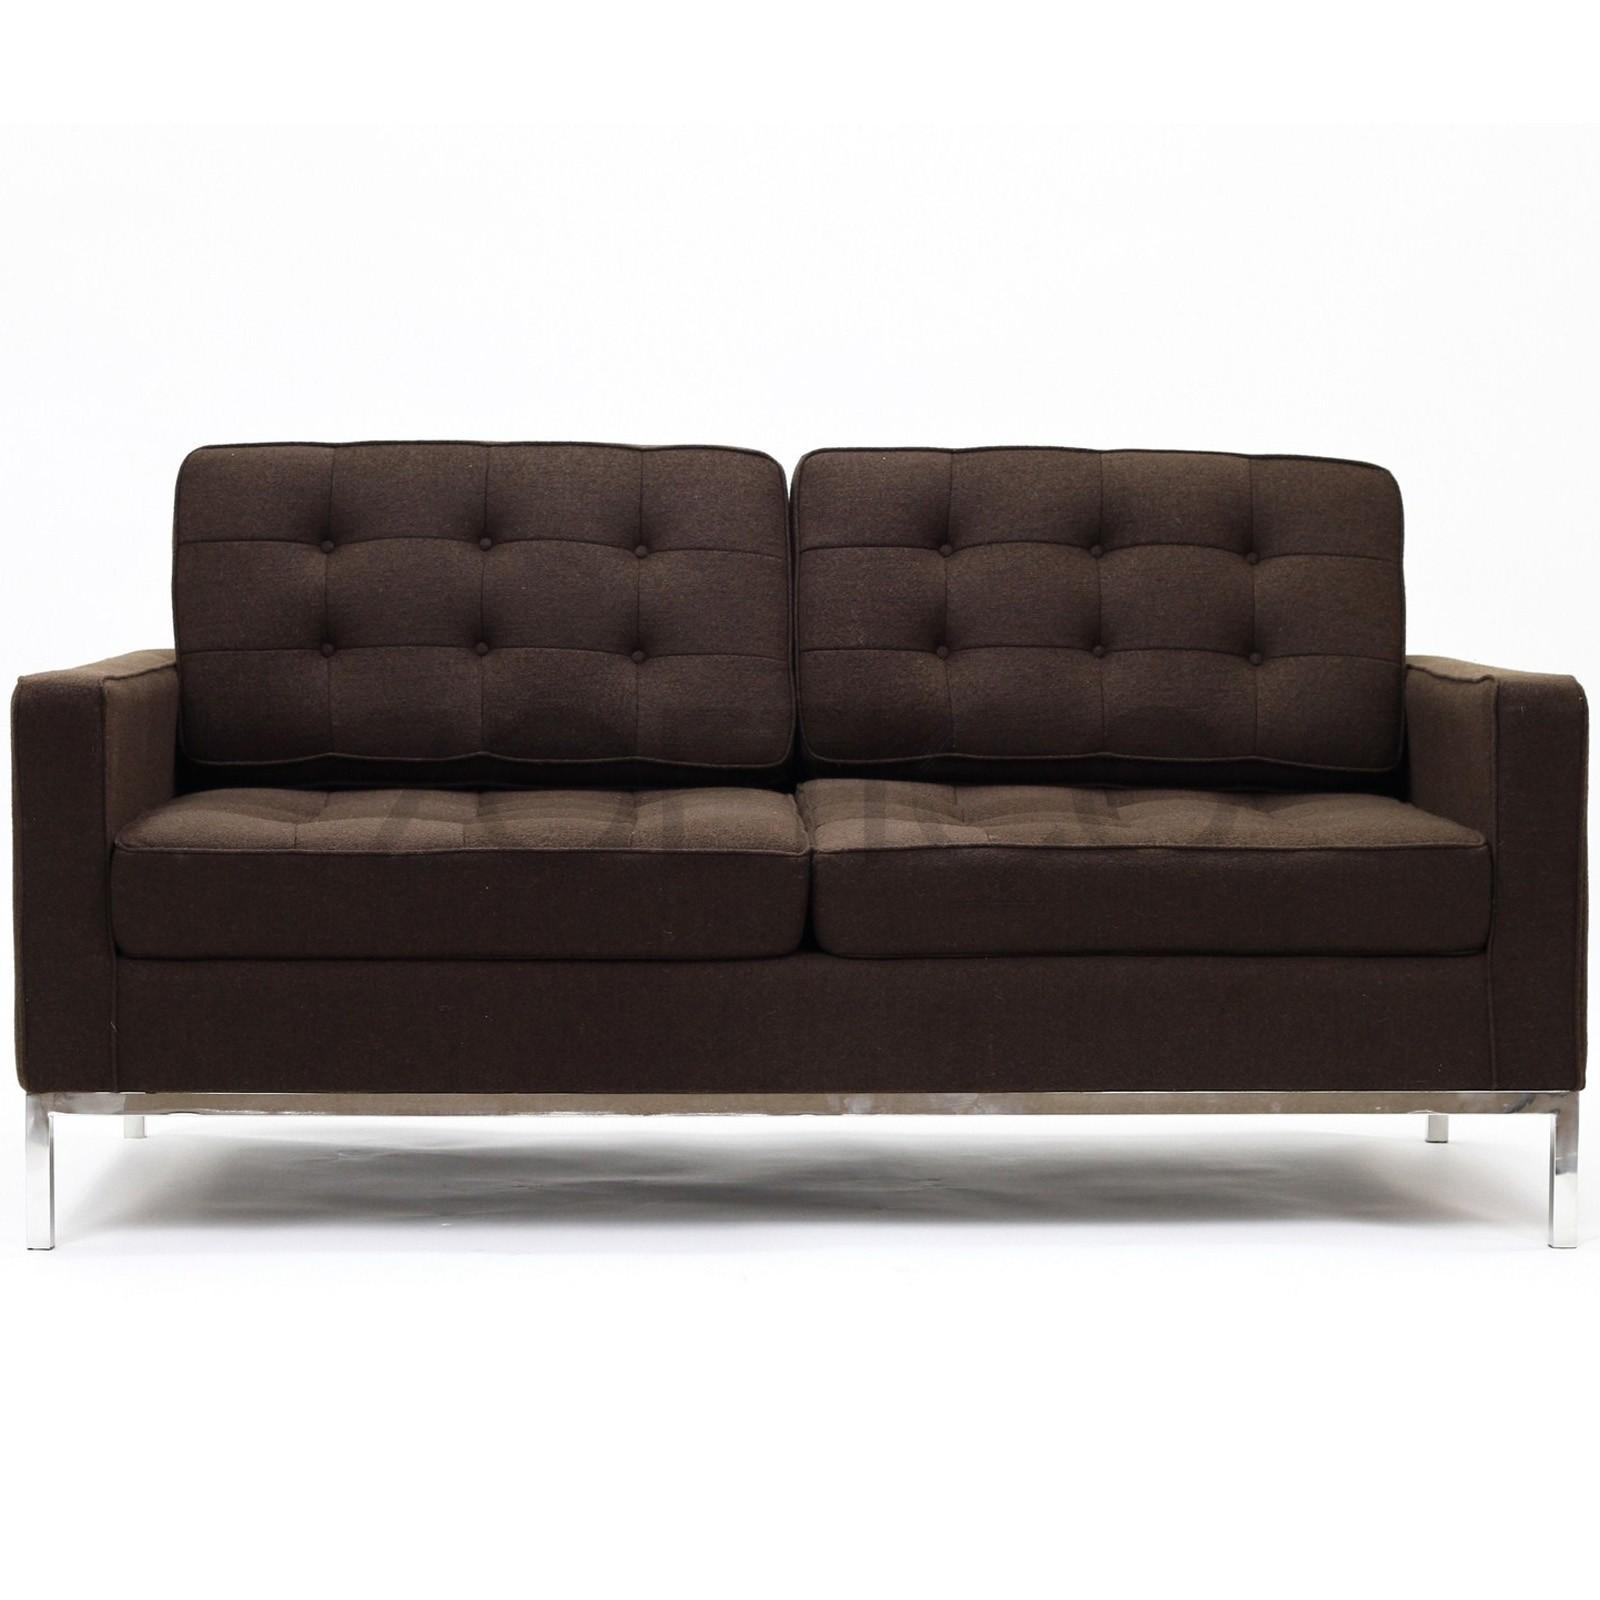 Florence Knoll Style Sofa – Leather Sectional Sofa With Regard To Florence Knoll Style Sofas (View 15 of 20)